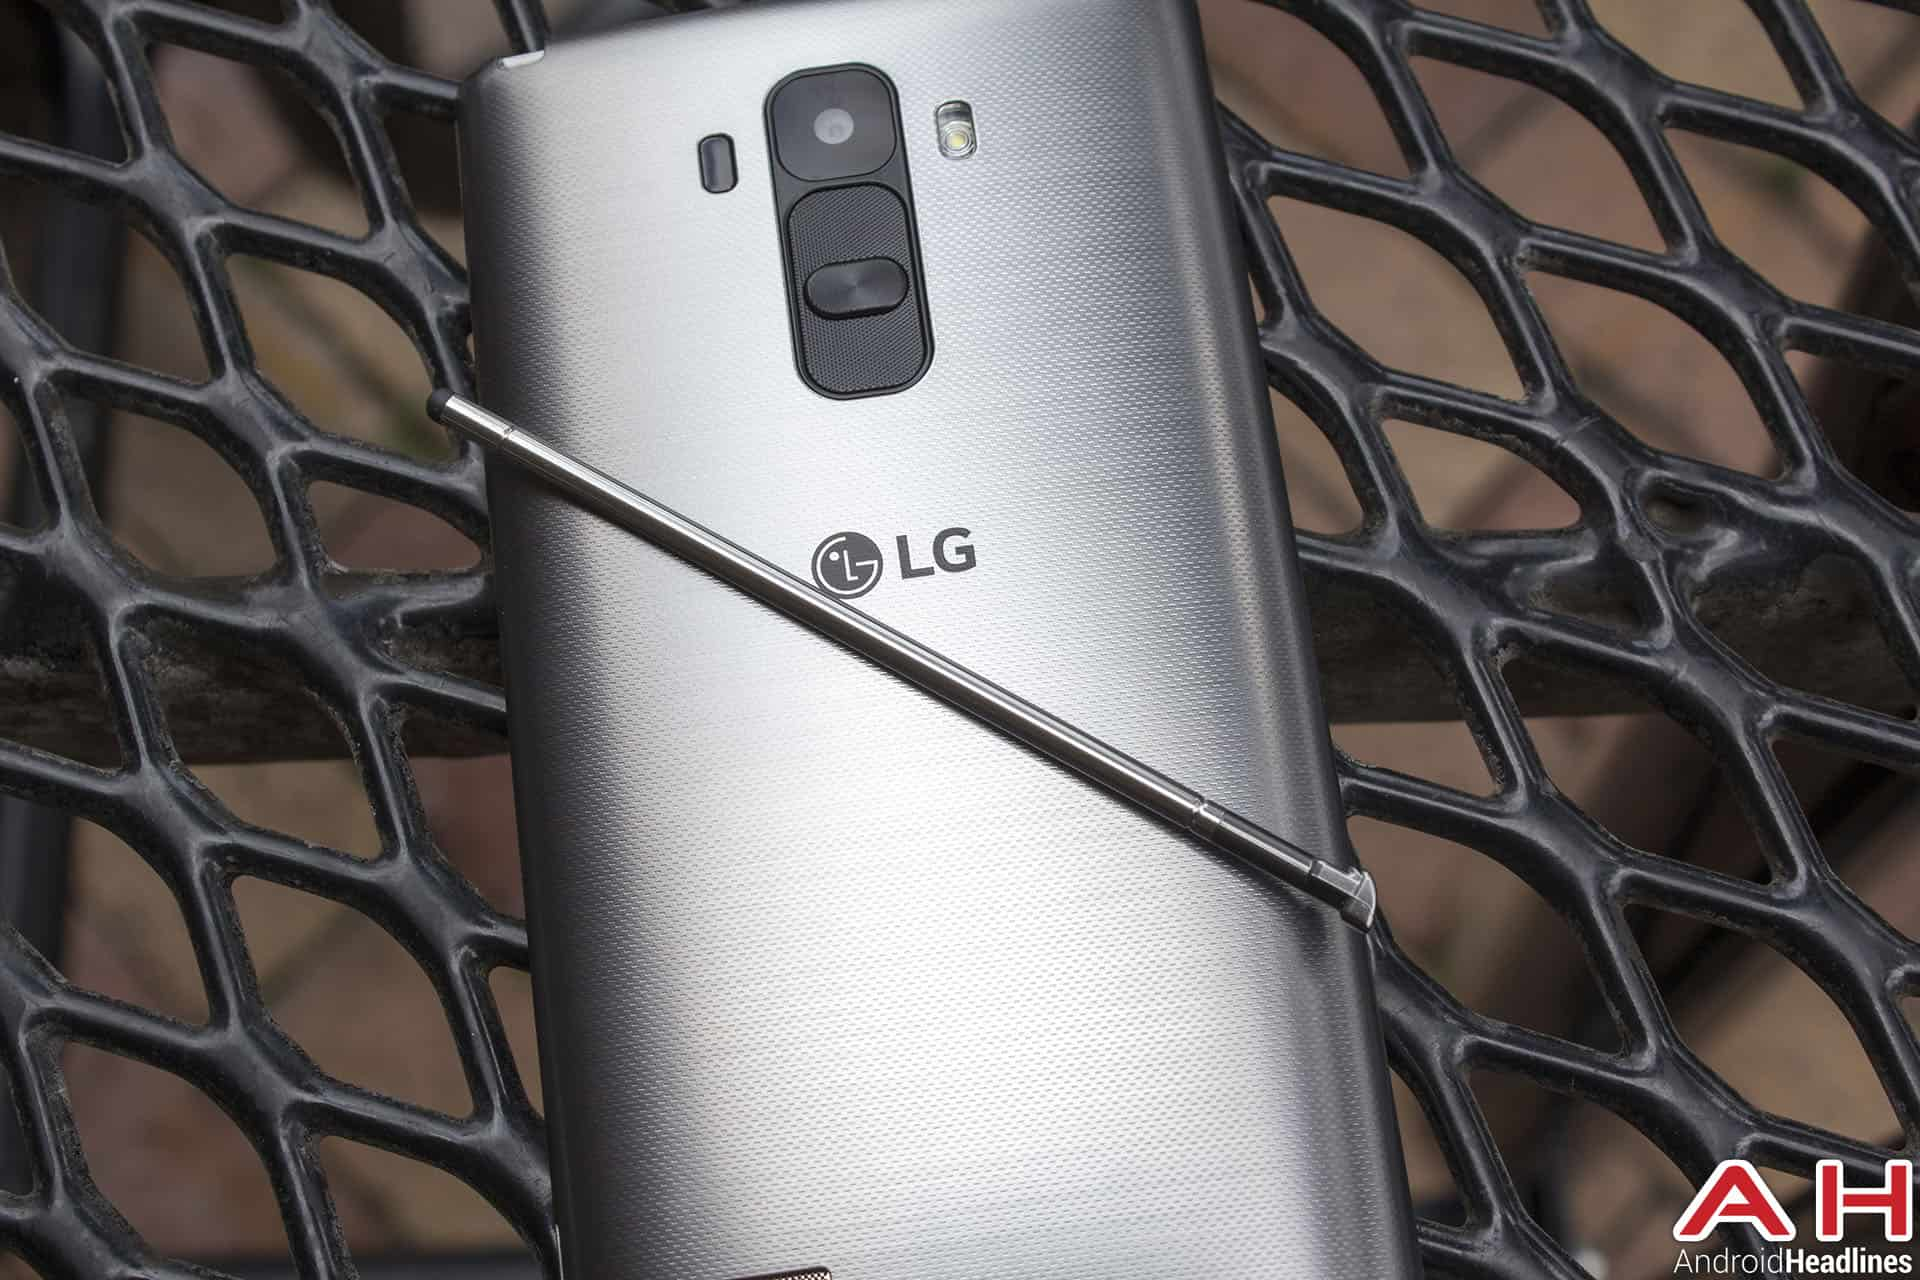 The Design Itself Is Unique And Very Lg Looking, With The Volume And Power  Buttons